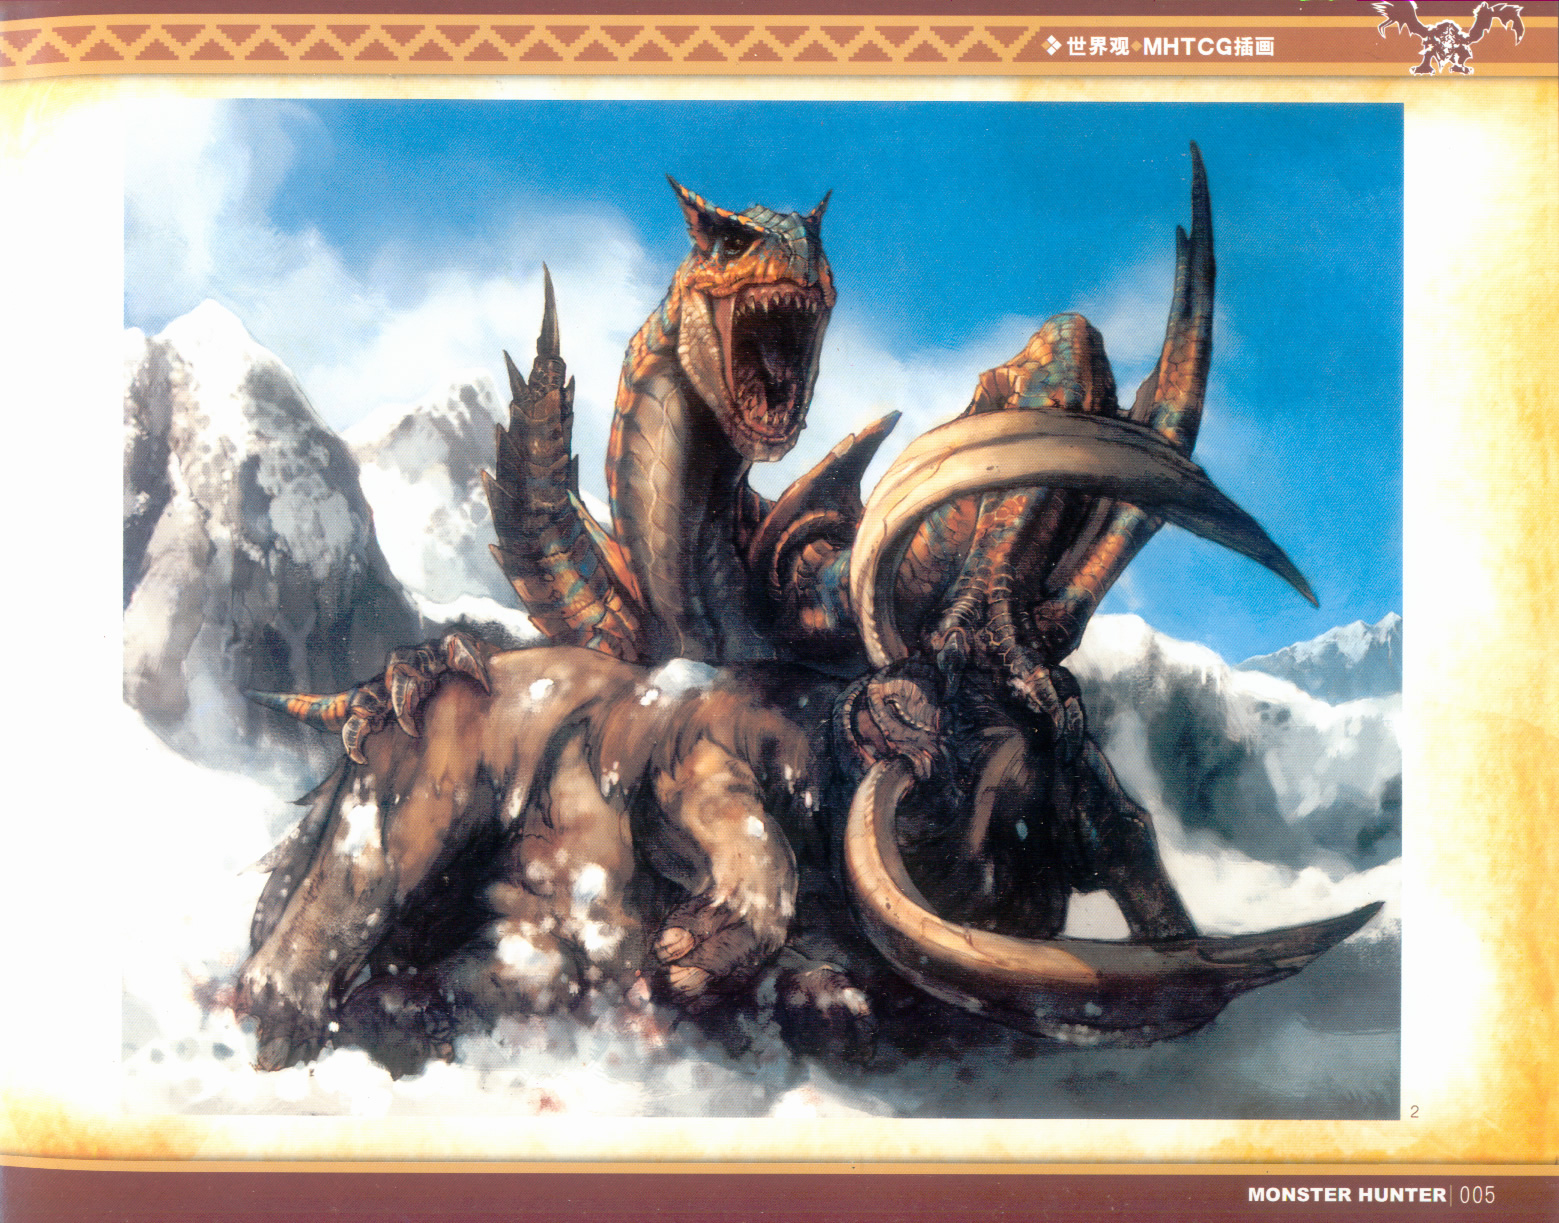 MONSTER_HUNTER_ILLUSTRATIONS_VOL.1_005